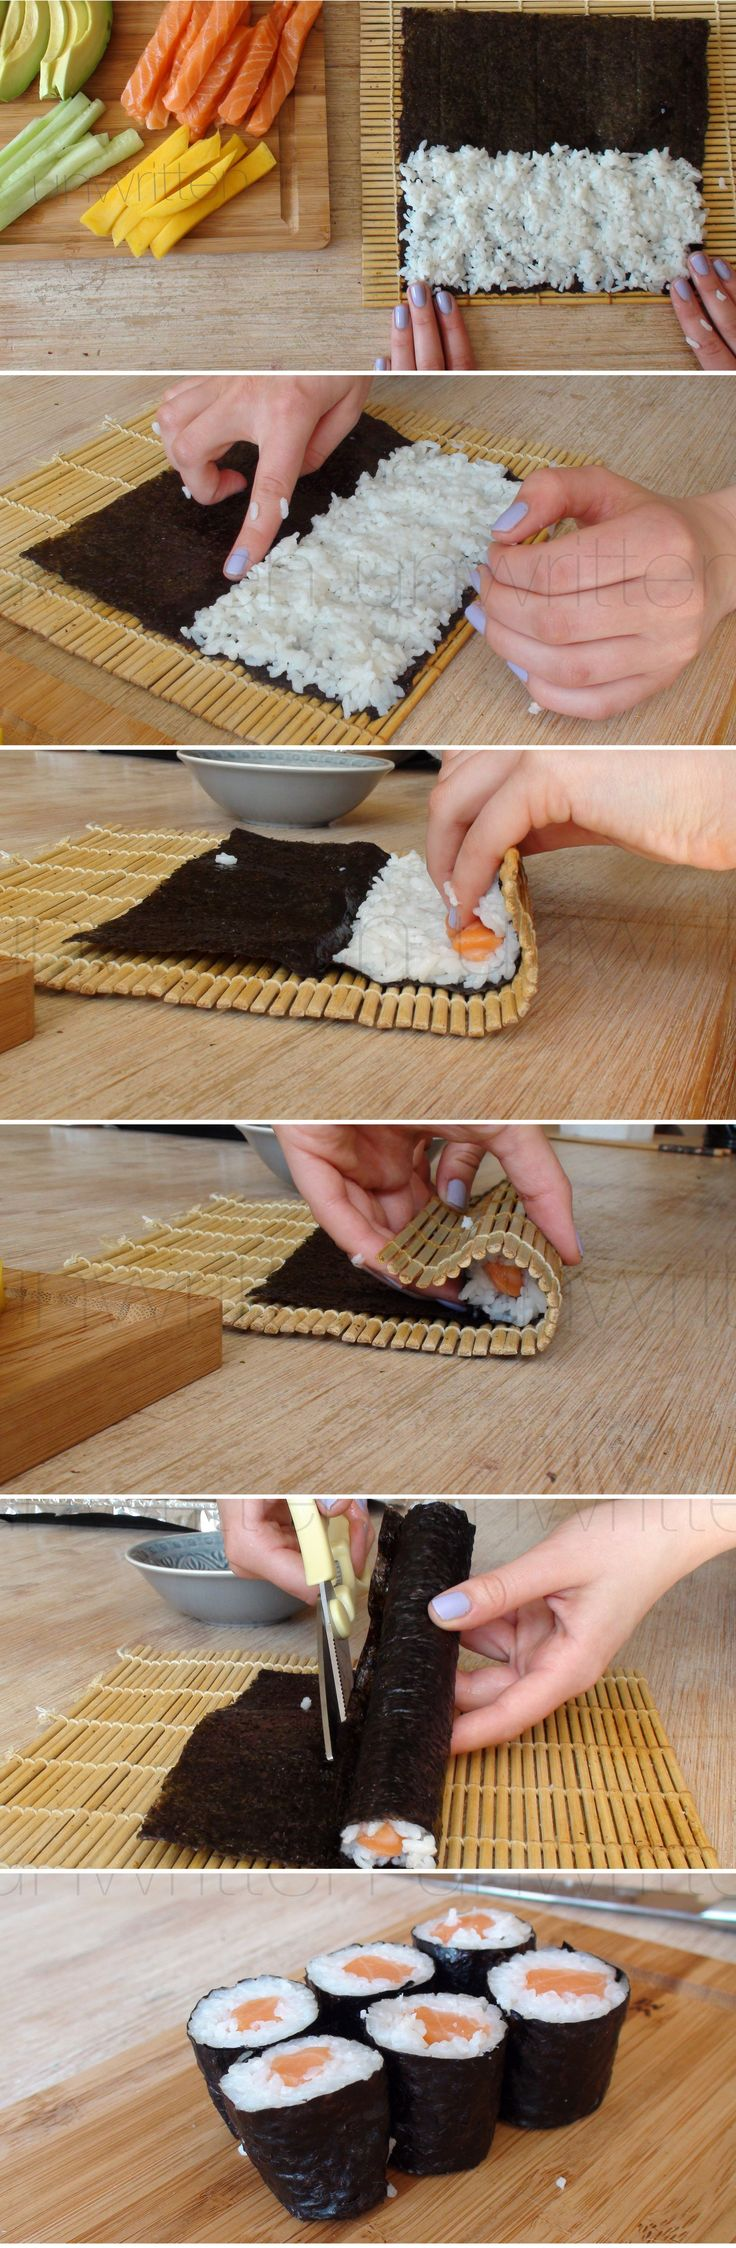 How to make SUSHI at HOME :) Hope you like it! @Suzy Mitchell Fellow deudney - maybe we can make this instead of the stuff imported from China ;P